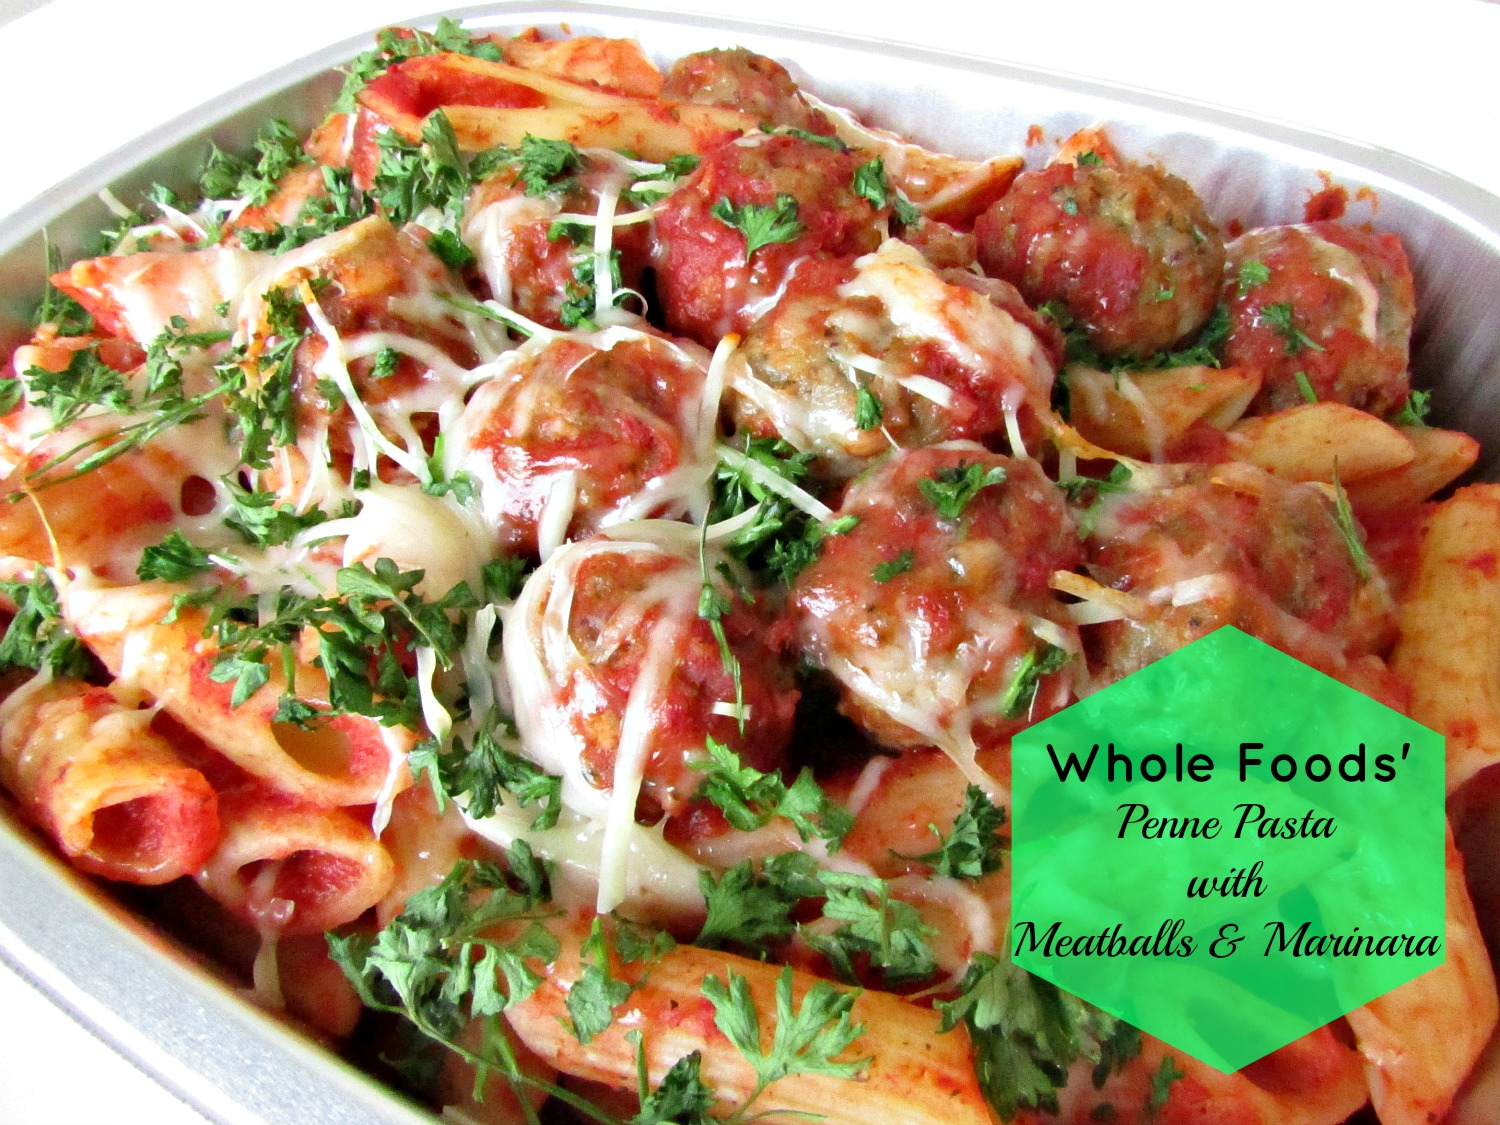 Limited Space Organizing Monday Meals Whole Foods Penne With intended for A Good Healthy Meal